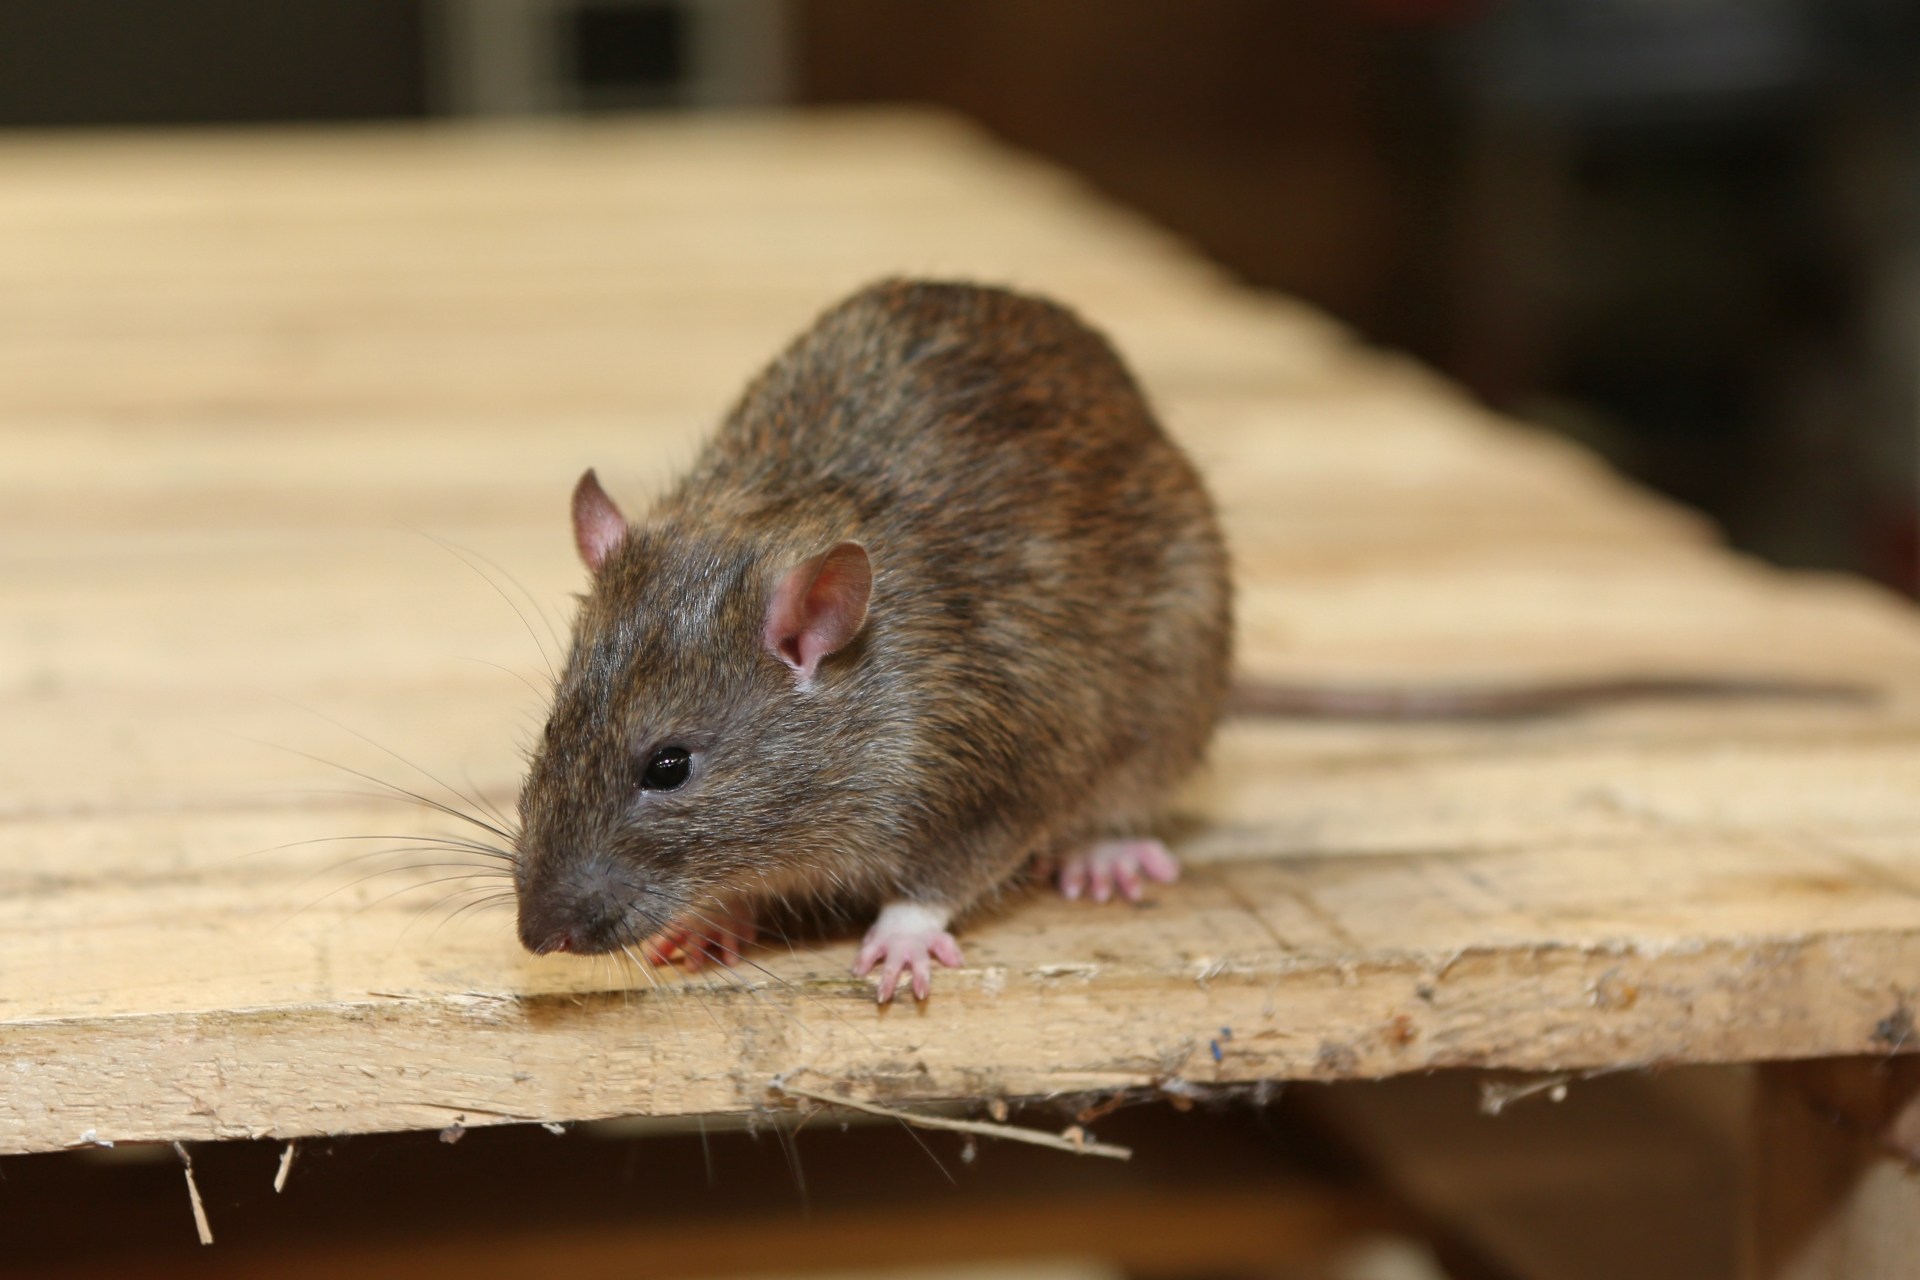 Rat Infestation, Pest Control in Harefield, Denham, UB9. Call Now 020 8166 9746